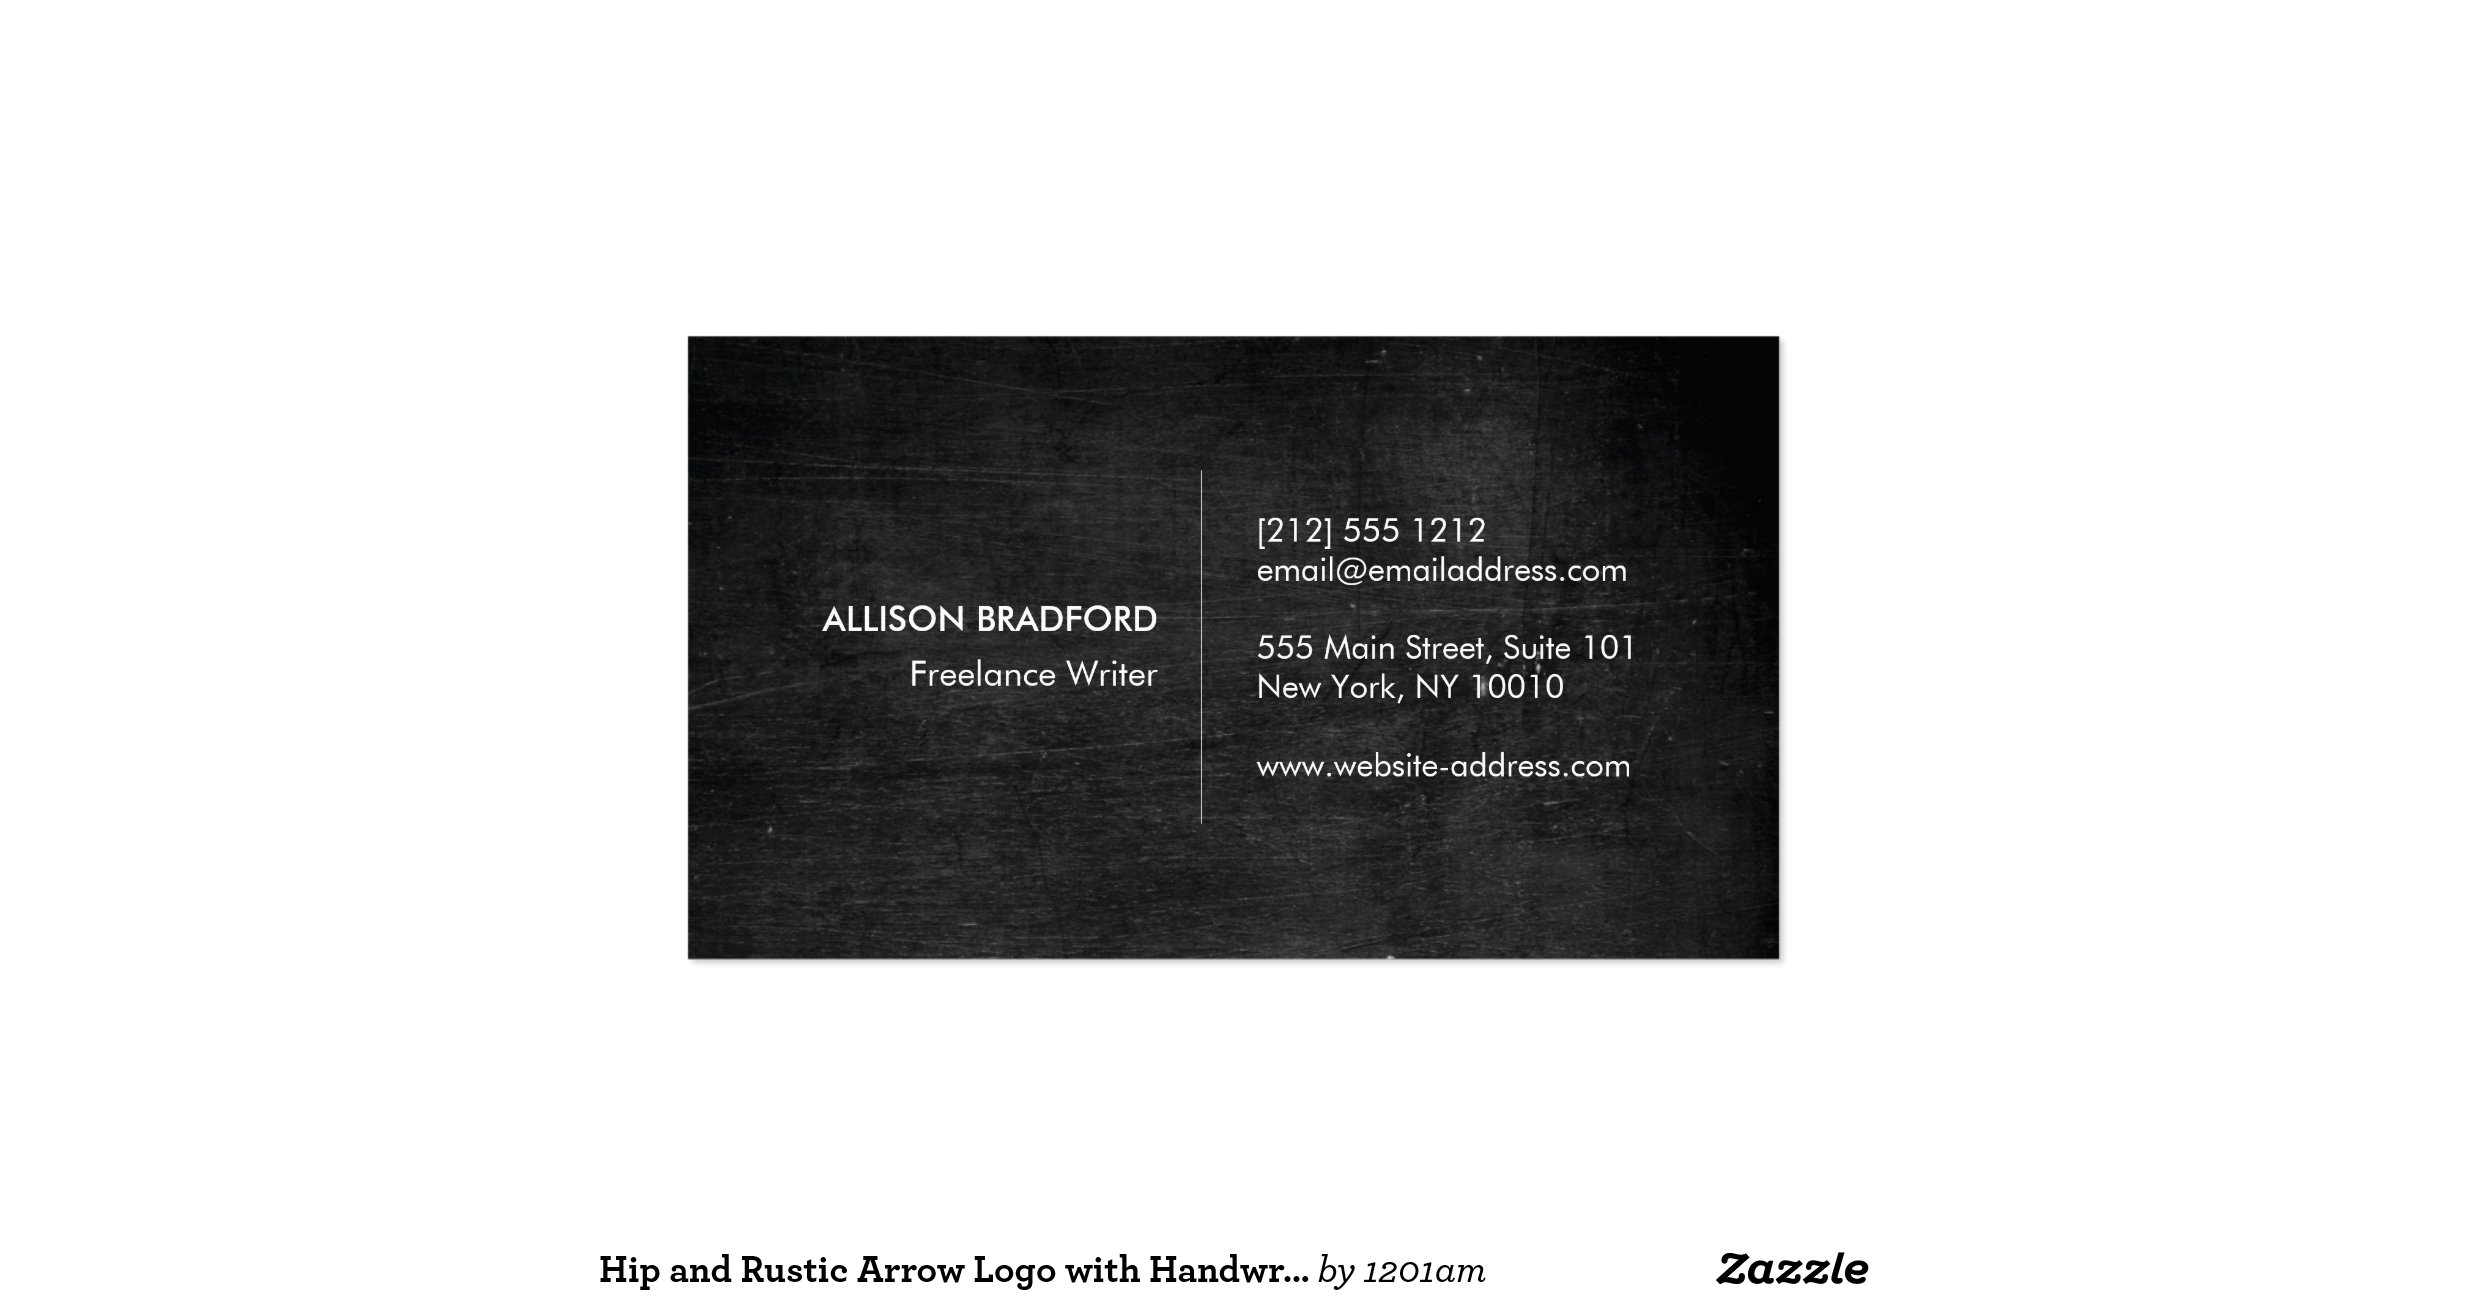 Hip and rustic arrow logo with handwritten name double for Handwritten business cards